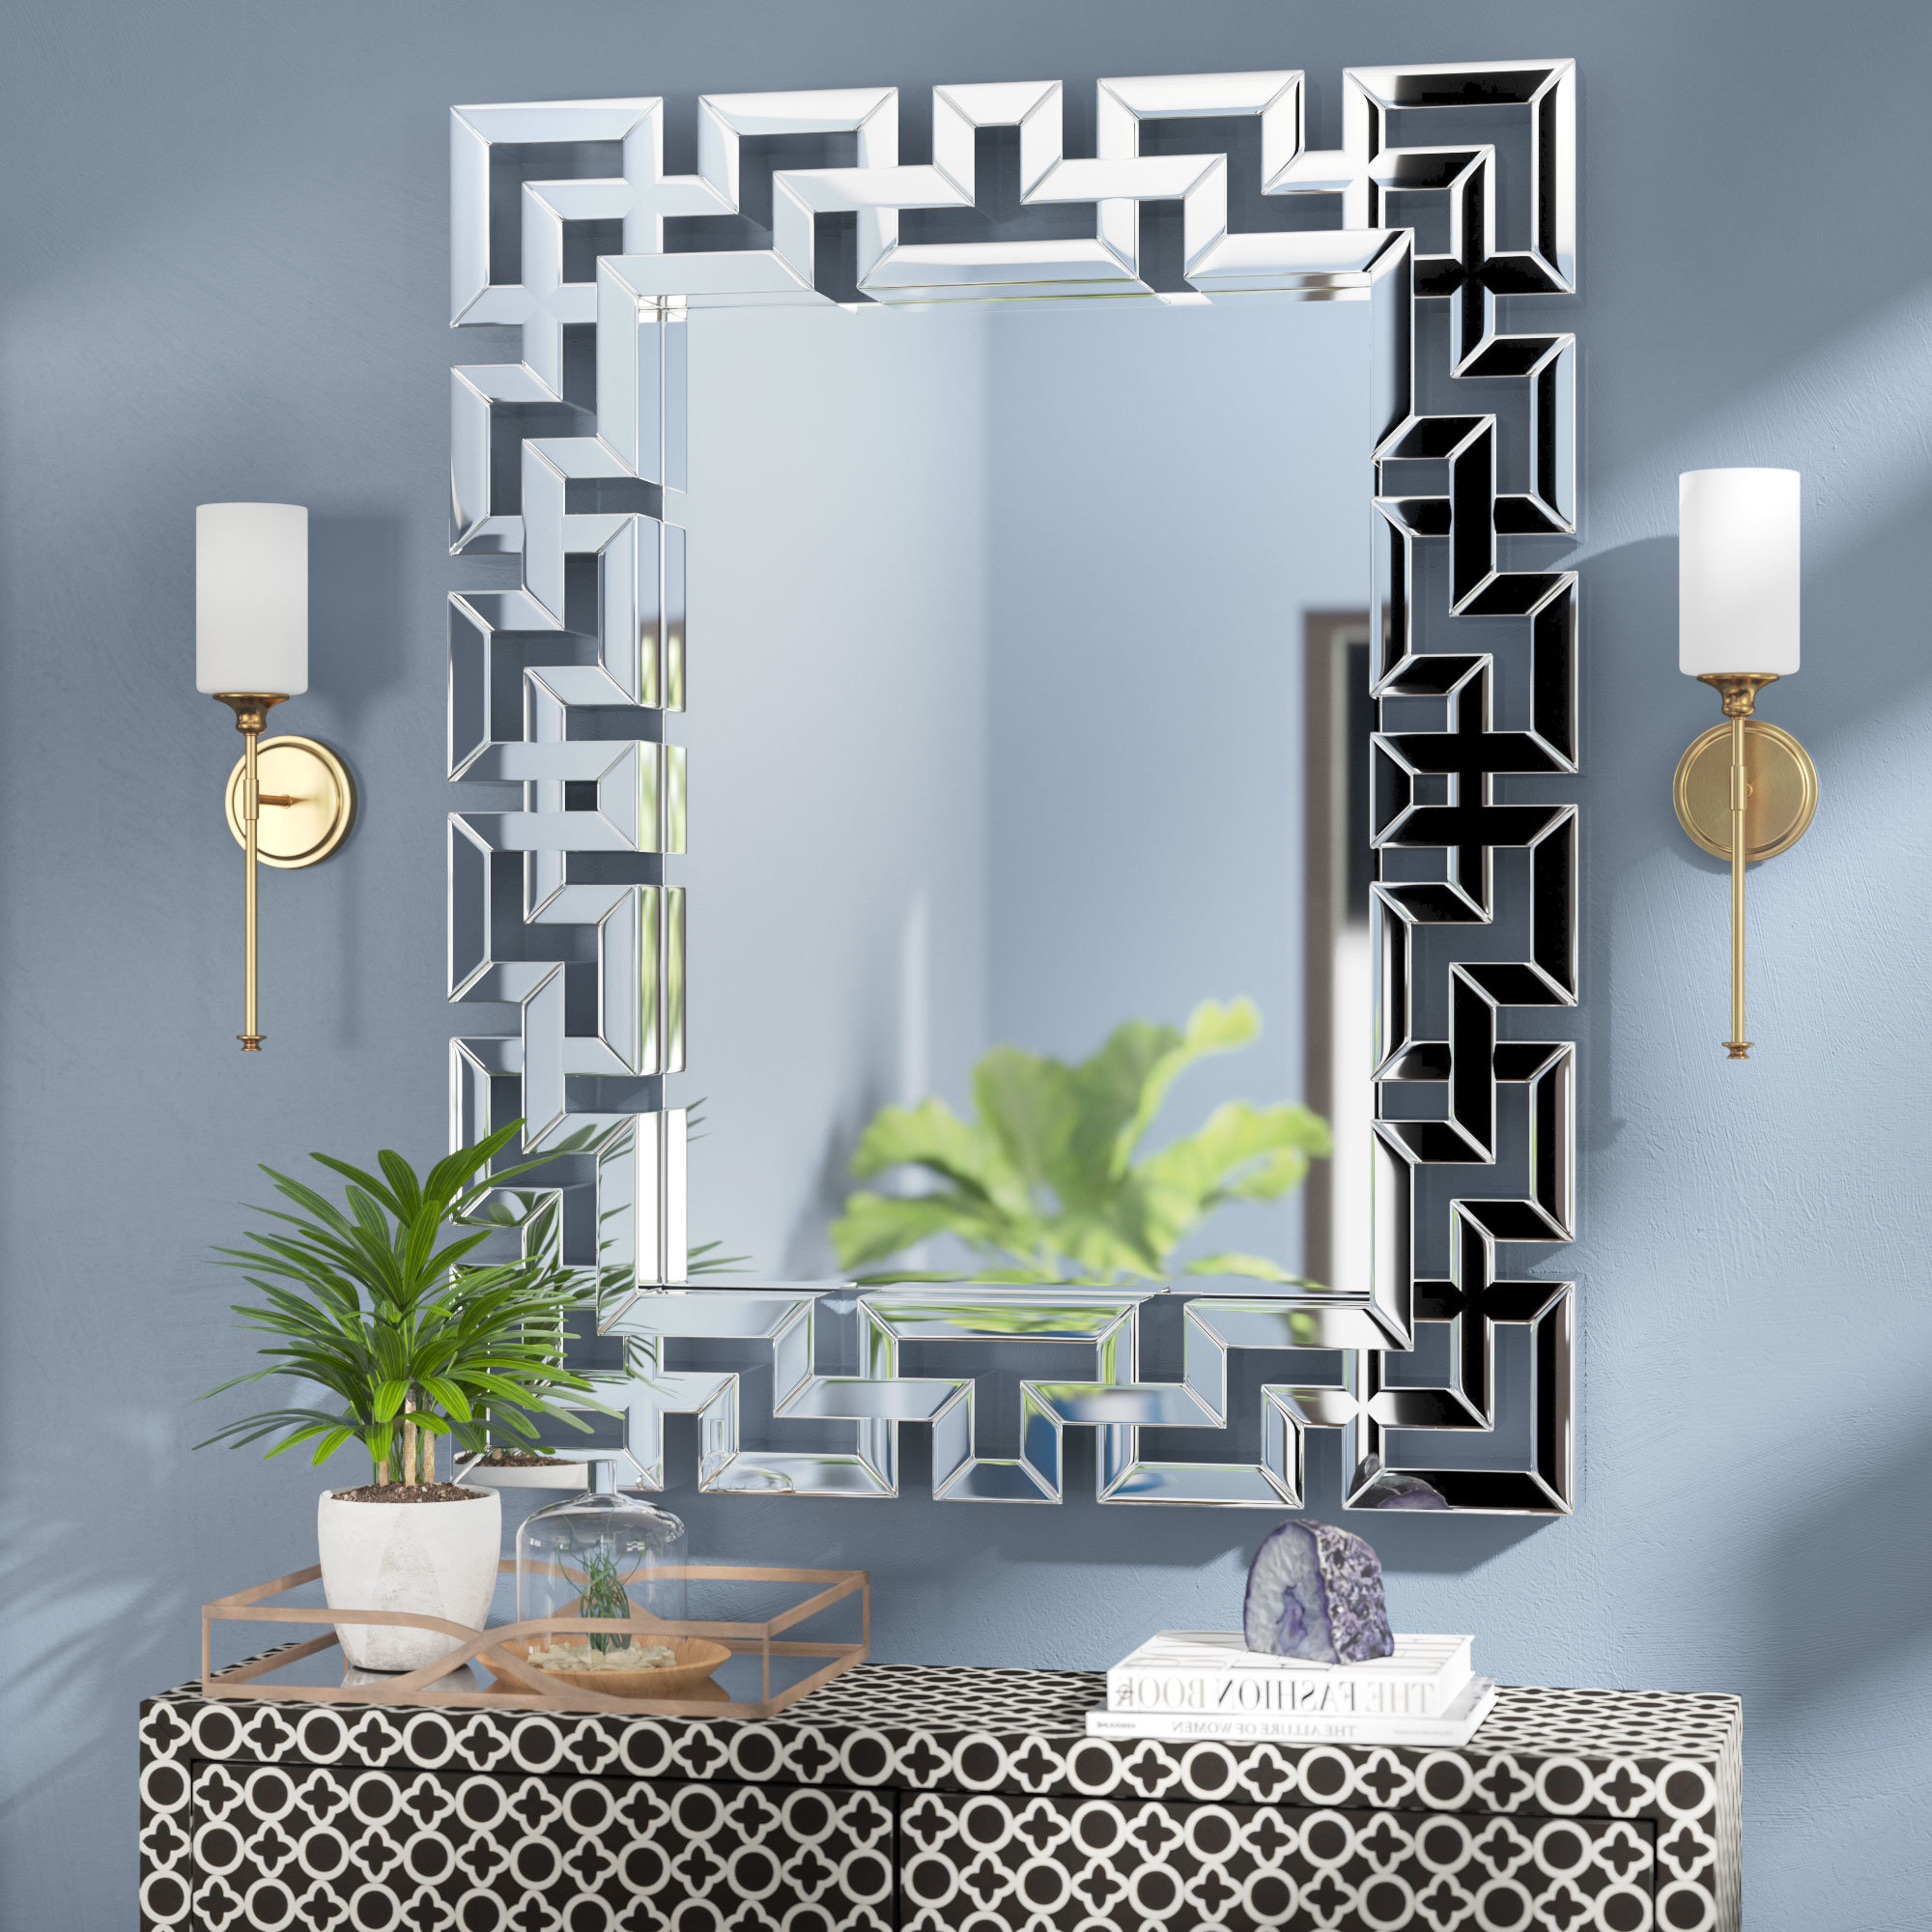 Widely Used Rectangle Ornate Geometric Wall Mirror Pertaining To Wall Mirrors (View 9 of 20)